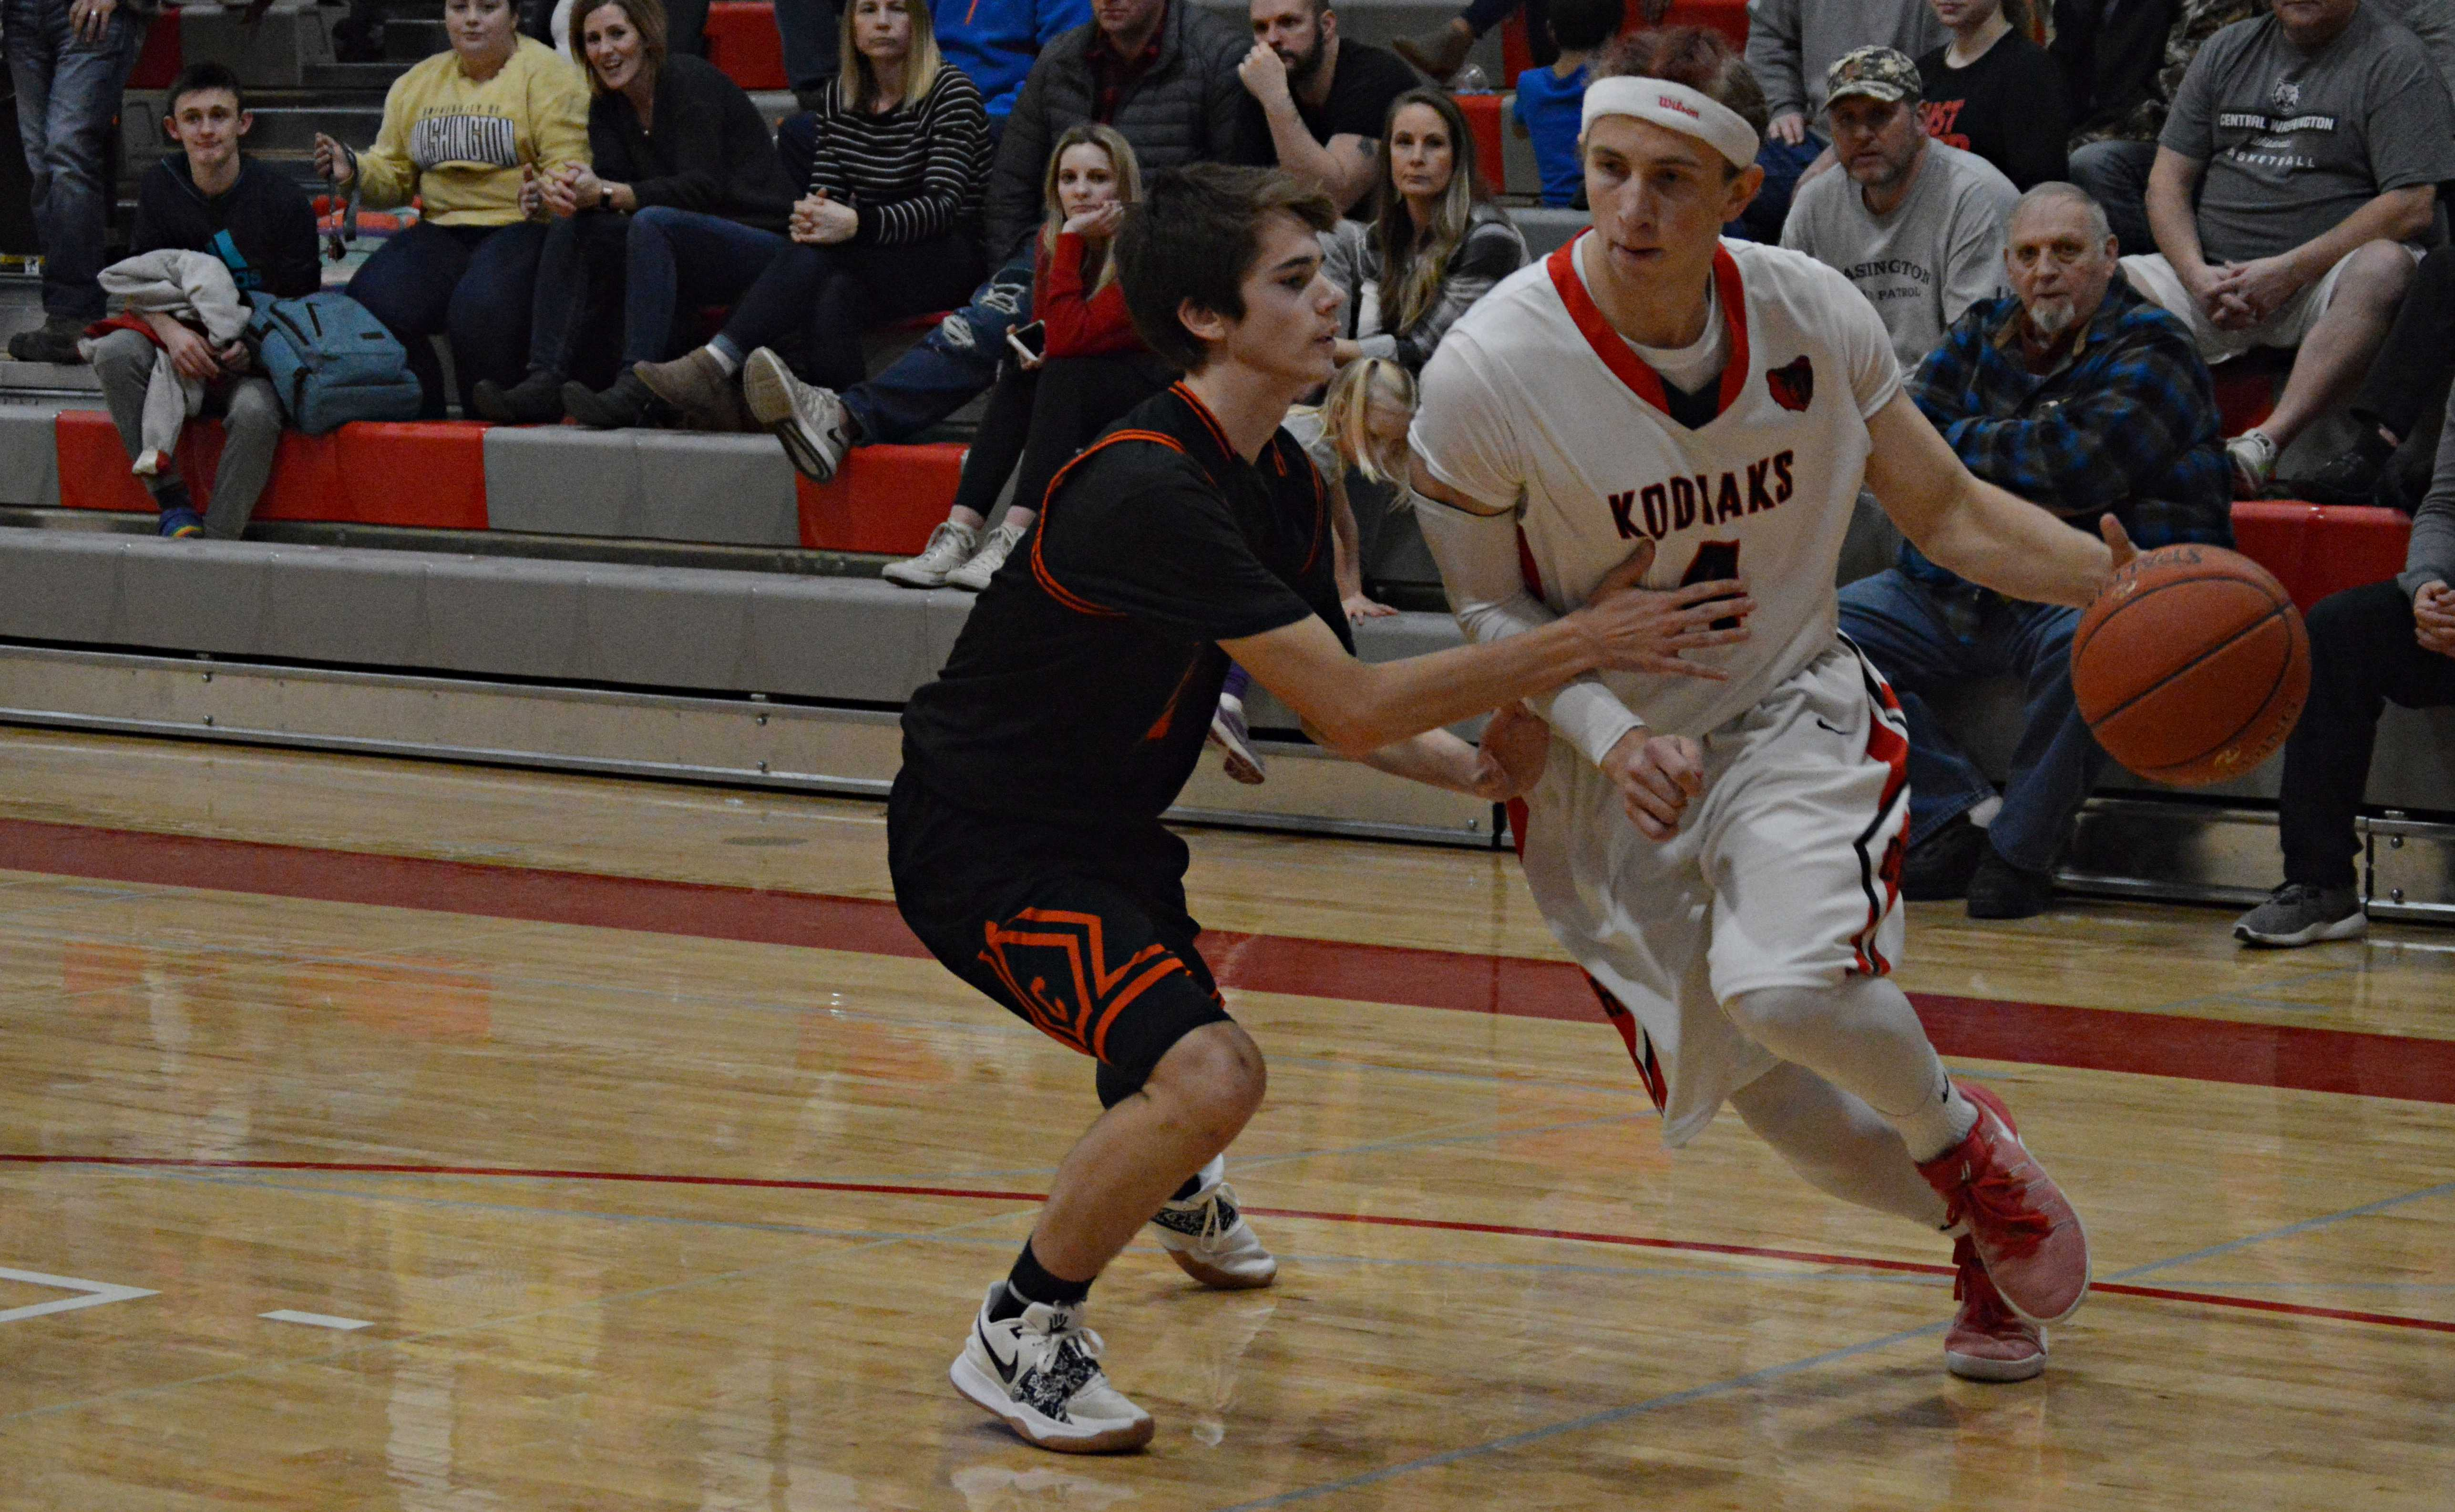 Conrad Hasse finished his CHS basketball career with three points in the fourth quarter.